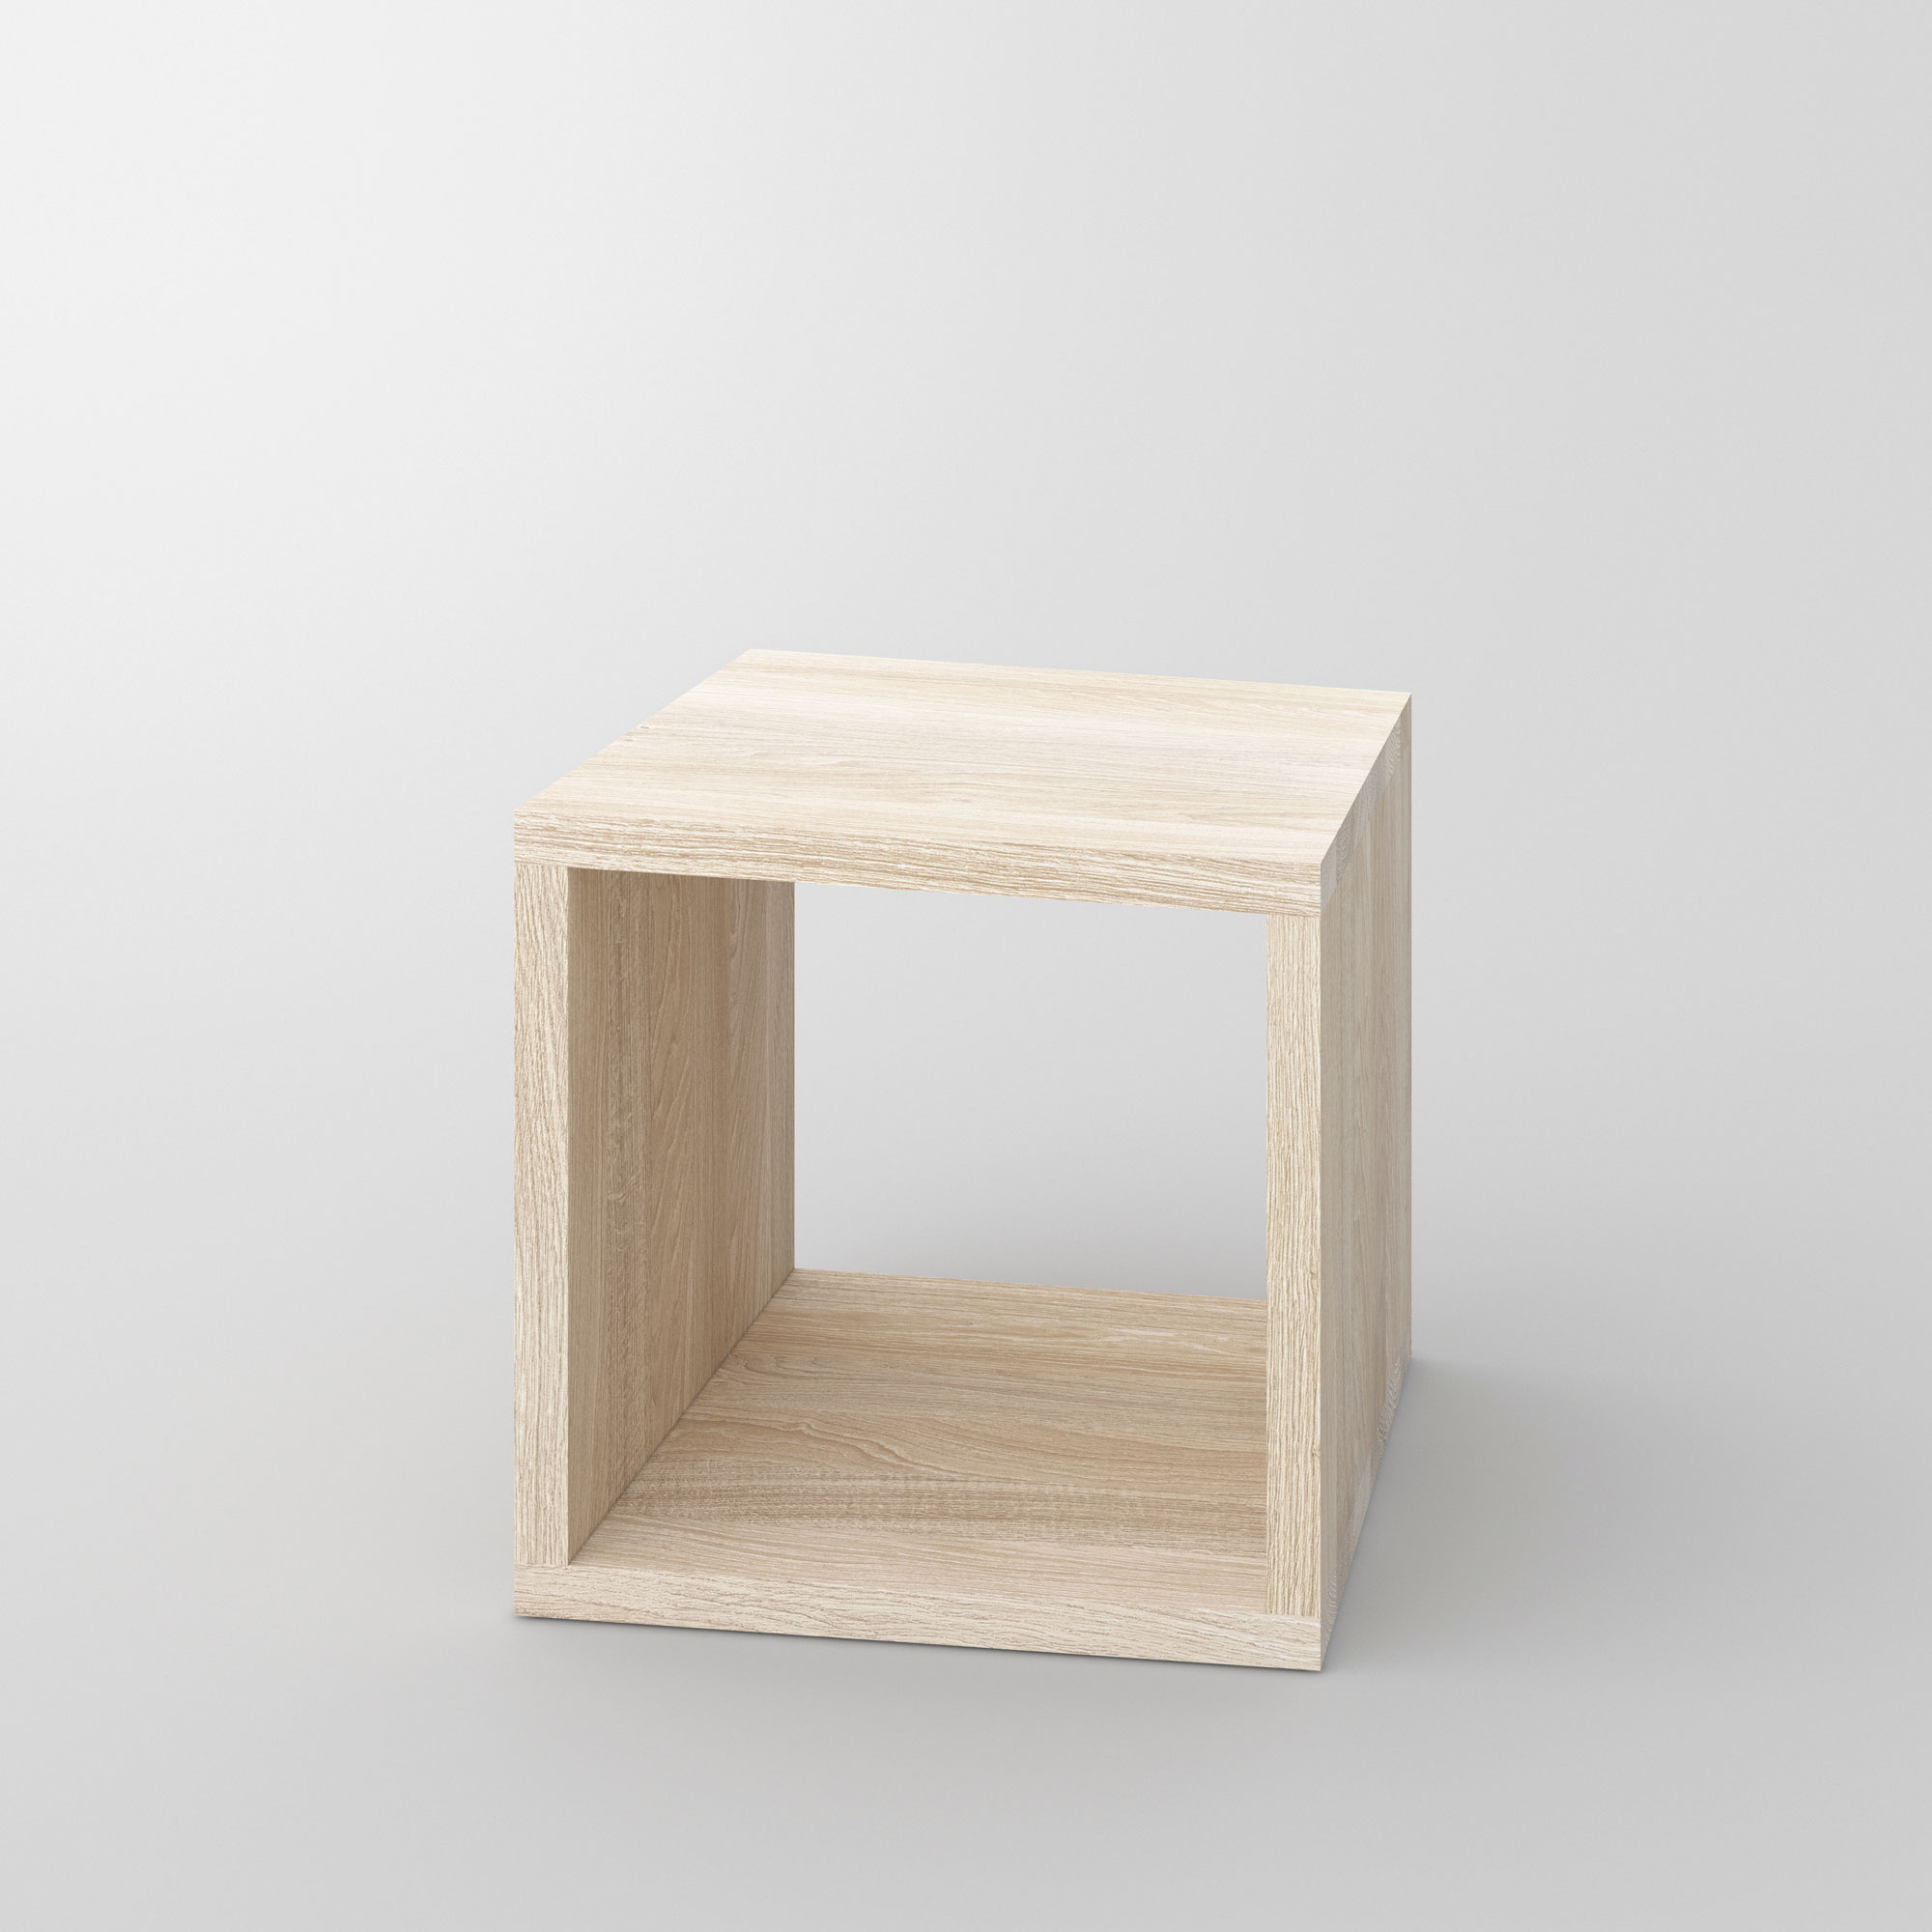 Multifunctional Wooden Stool MENA B 3 custom made in solid wood by vitamin design